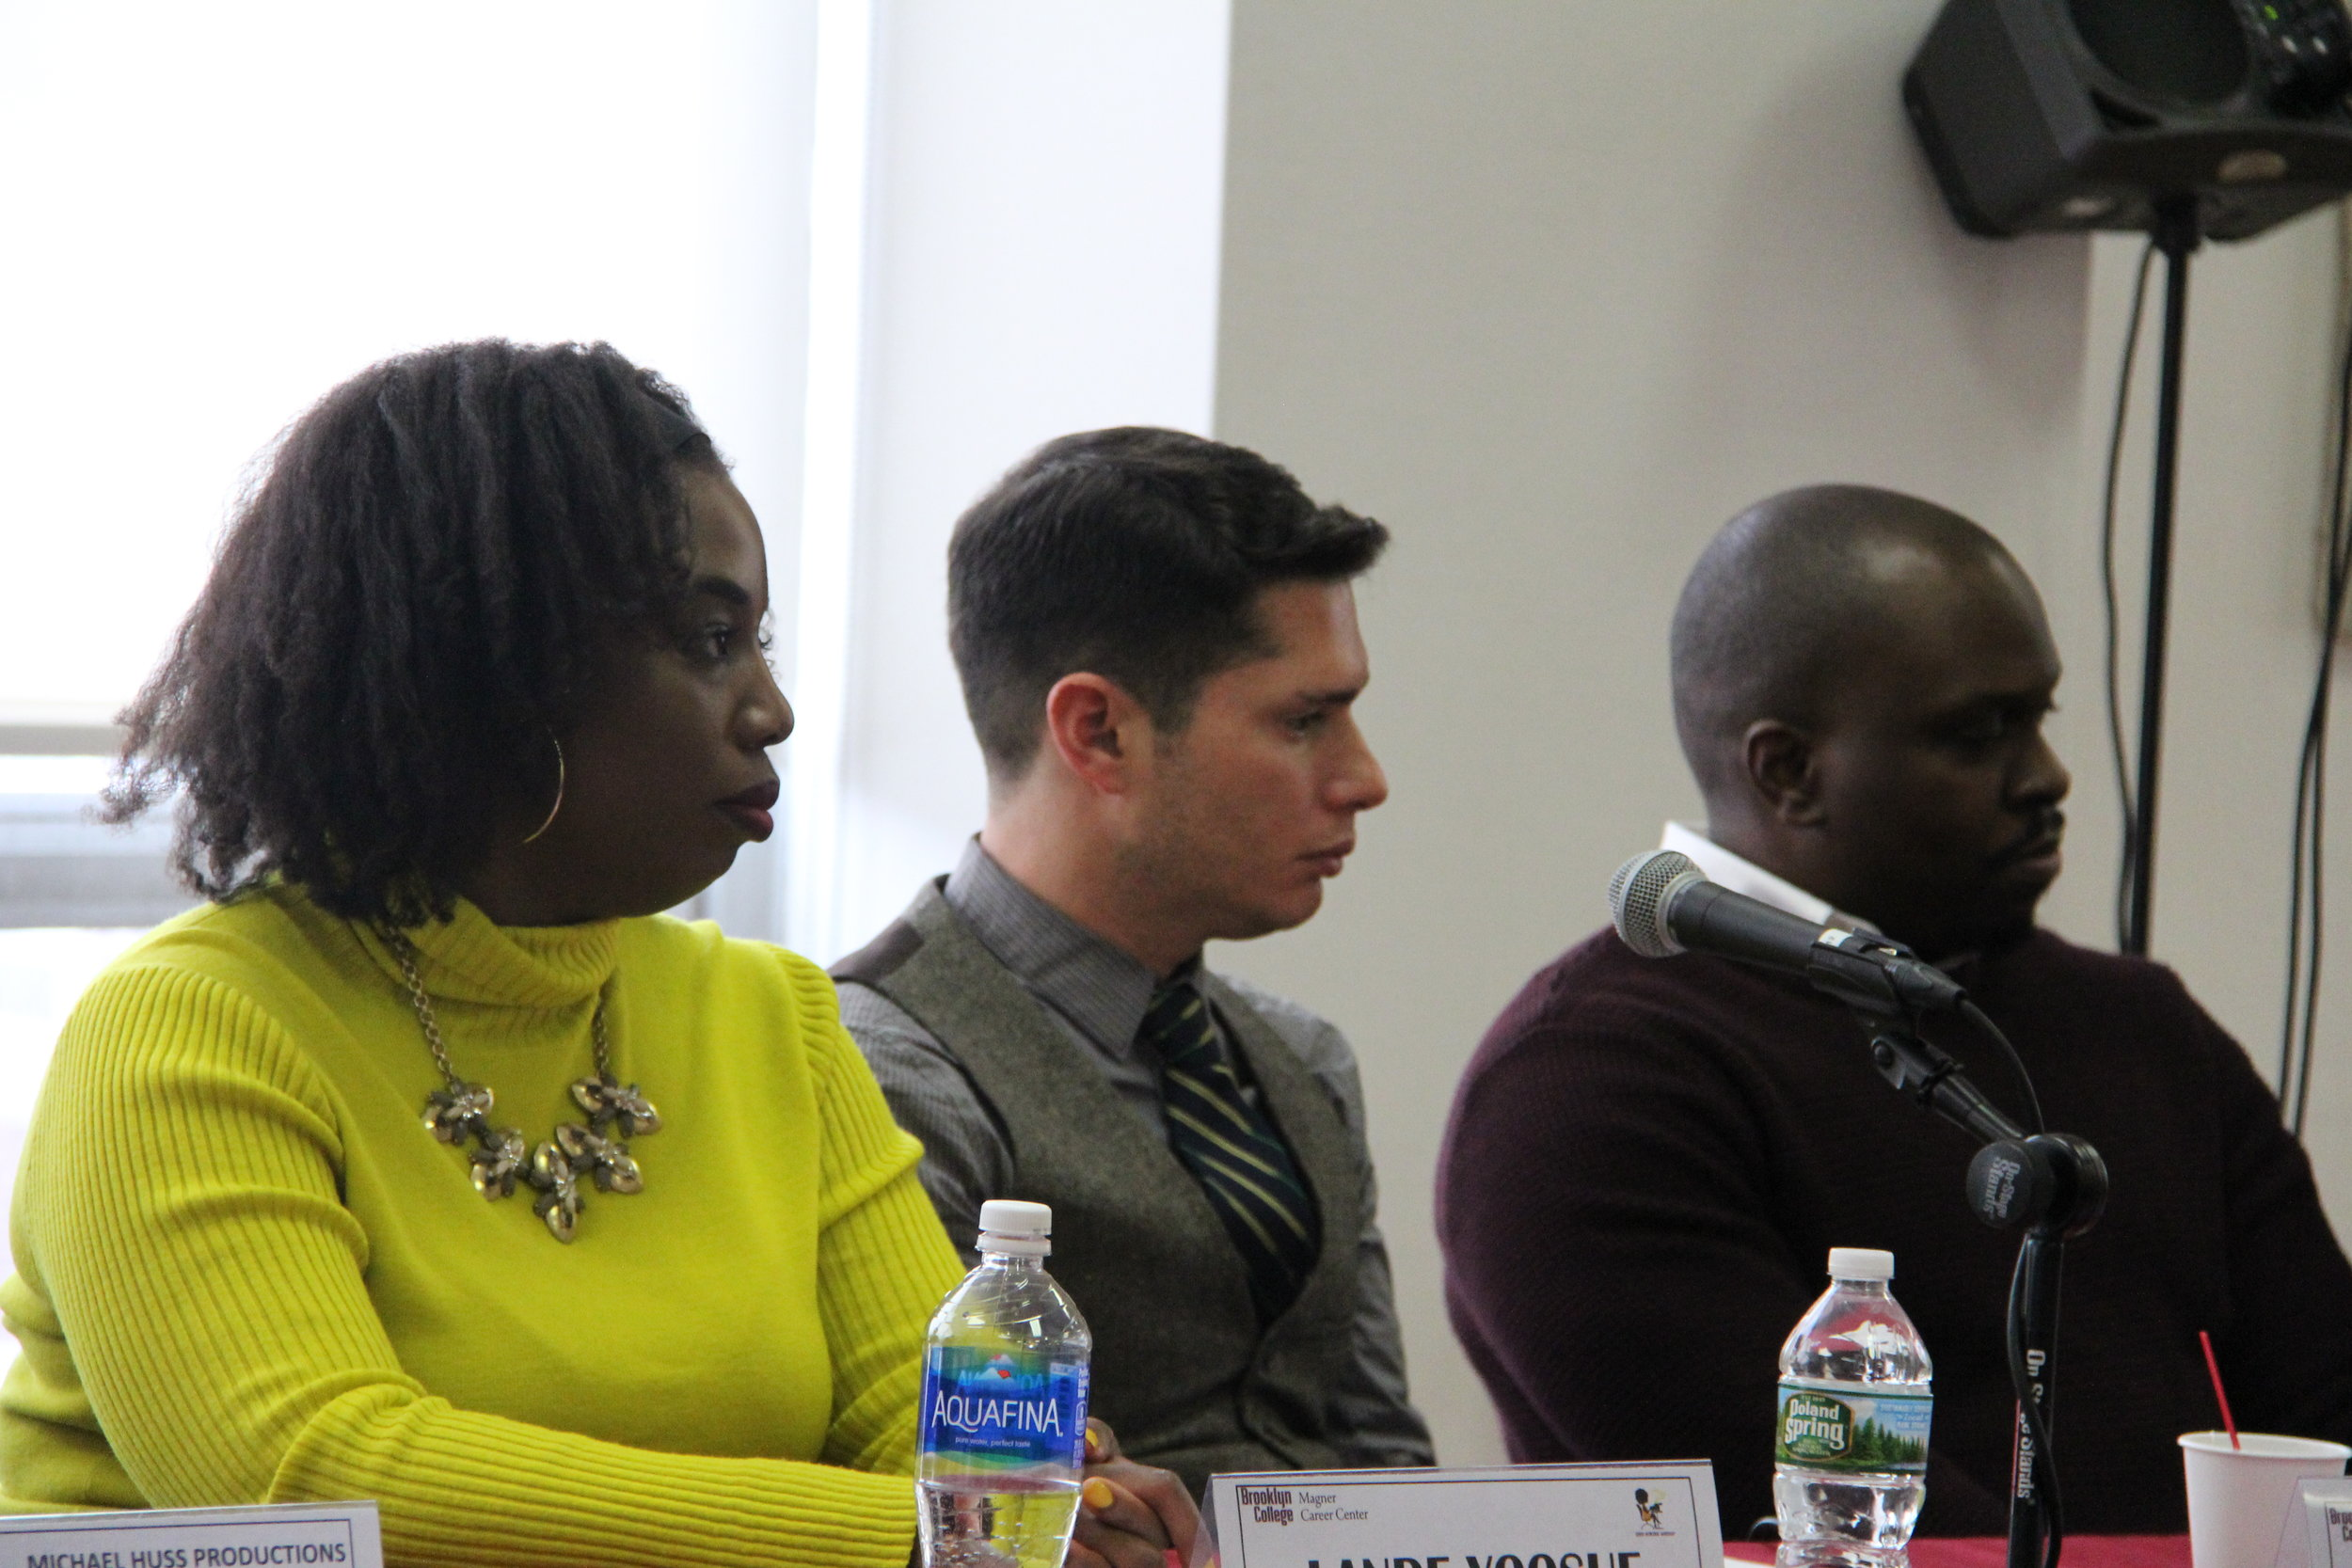 MAGNER CENTER ALUMNI PANEL - Brooklyn, NYC - Lande was a co-panelist for the Magner Center career day event at her alma mater Brooklyn College. She discussed her experience as a filmmaker along with other established professionals.